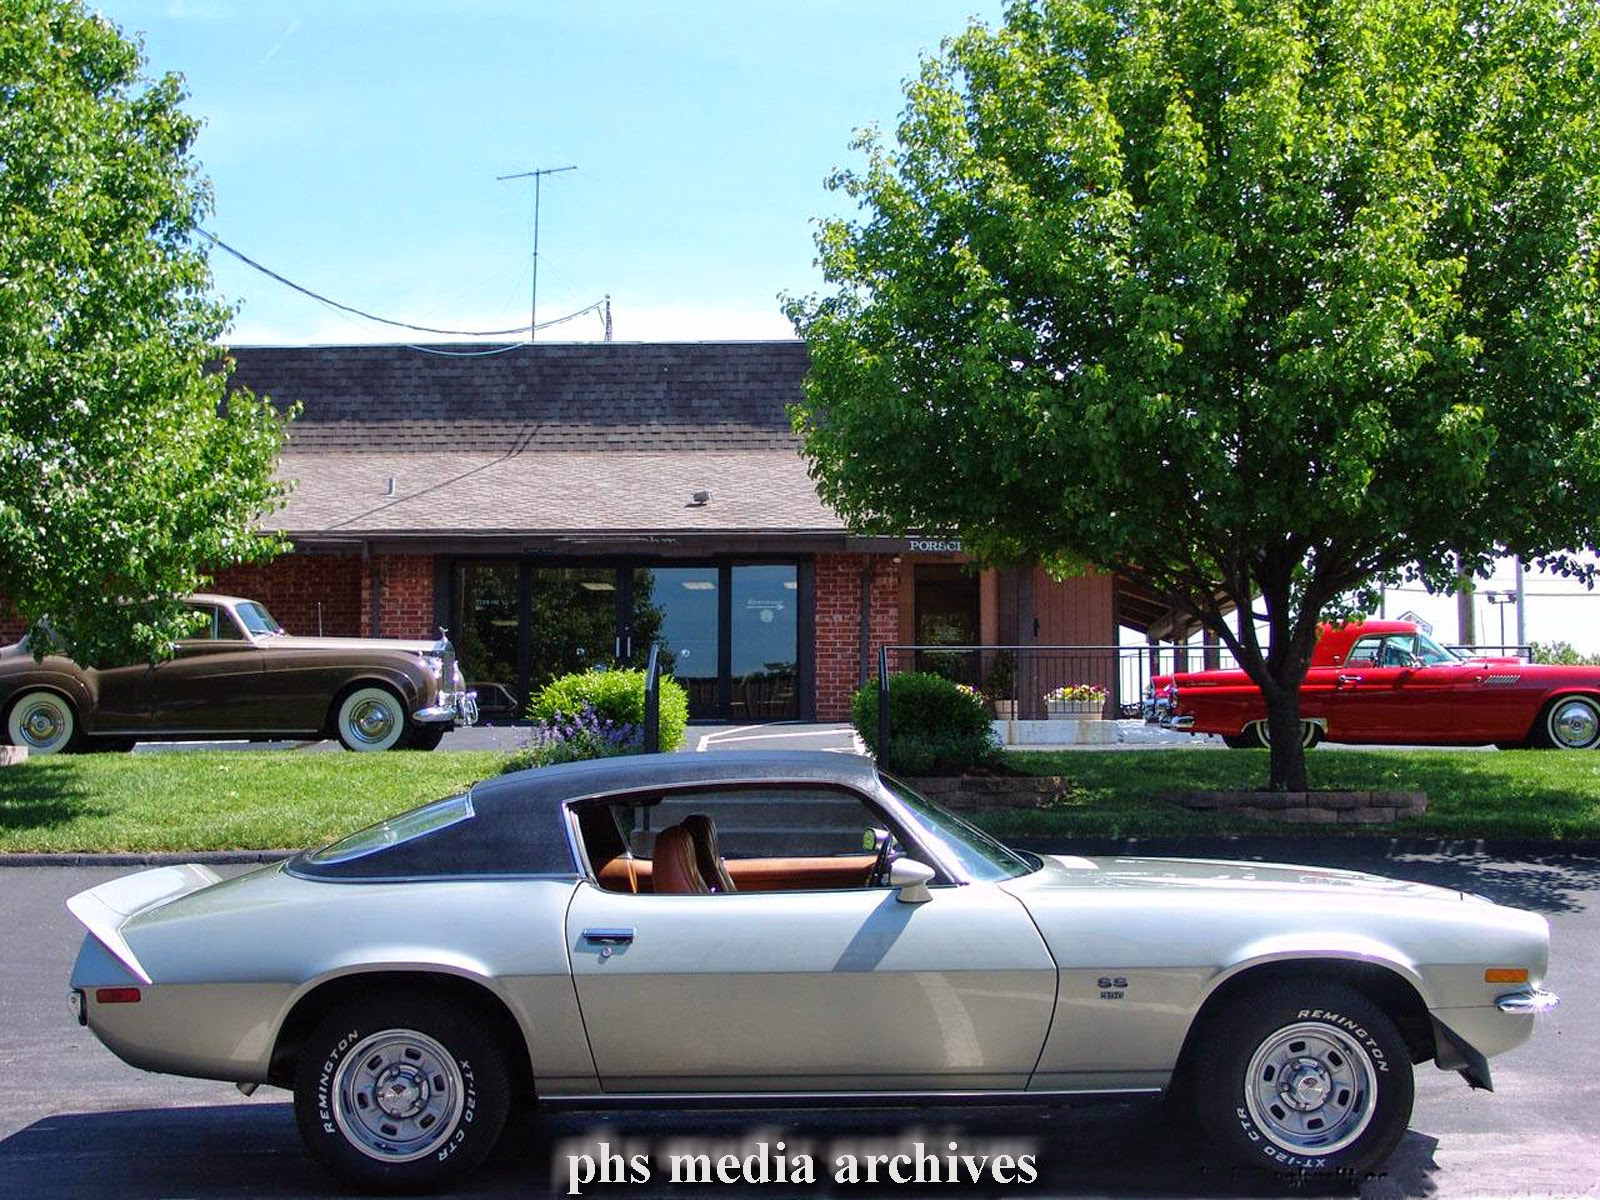 Ghost Cars Series: 1972 Camaro SS 396 | phscollectorcarworld